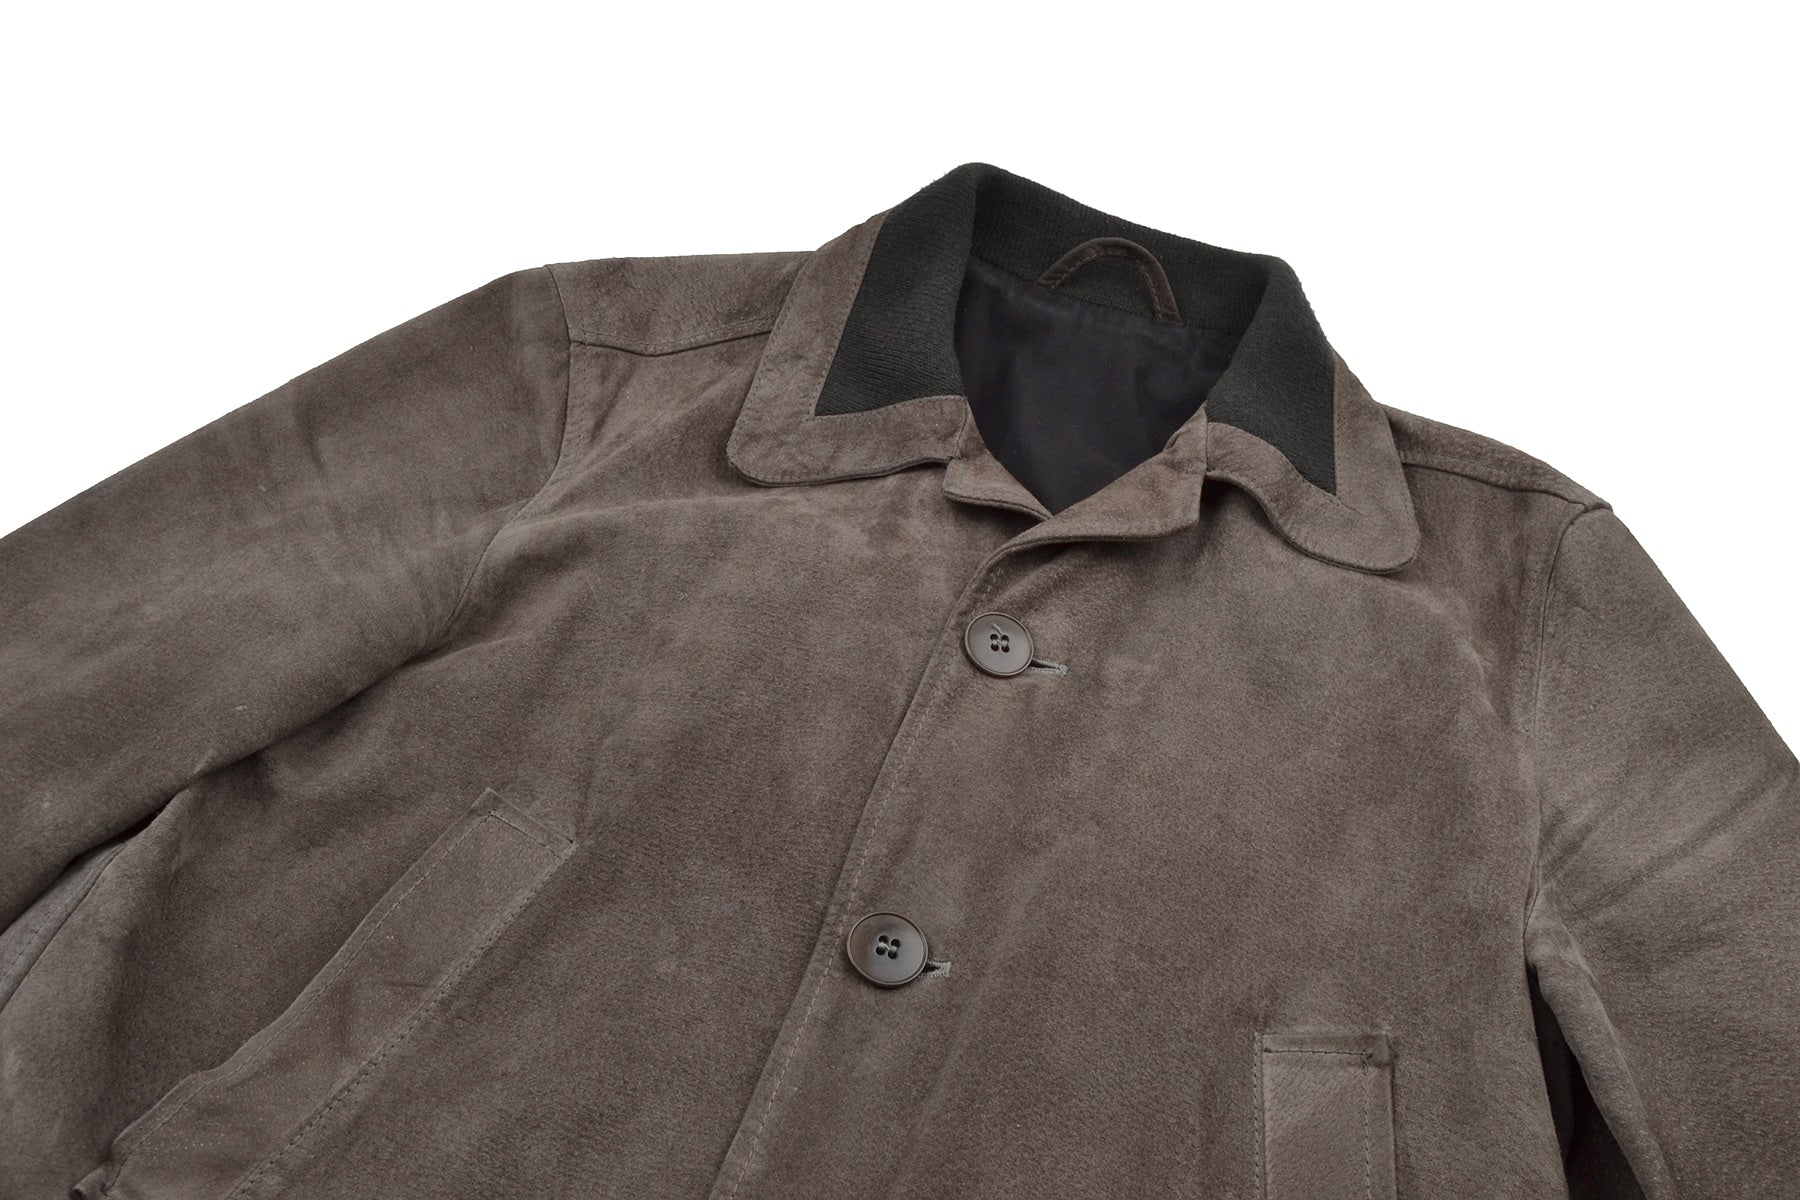 2003 A/W LEATHER BOMBER JACKET WITH COLLAR DETAIL